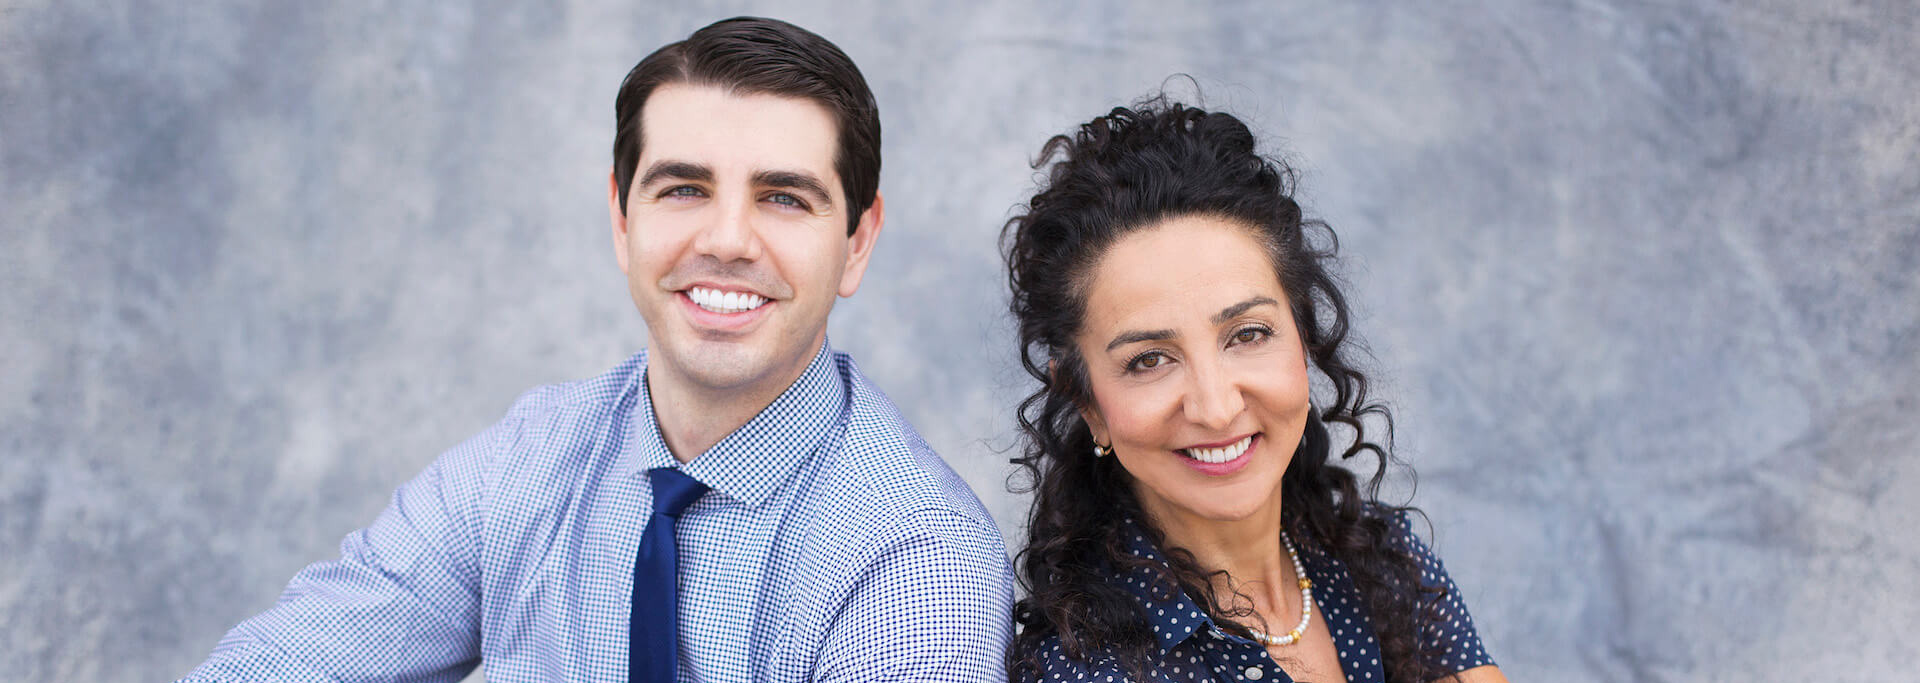 Lifetime Smiles Dentists in Escondido